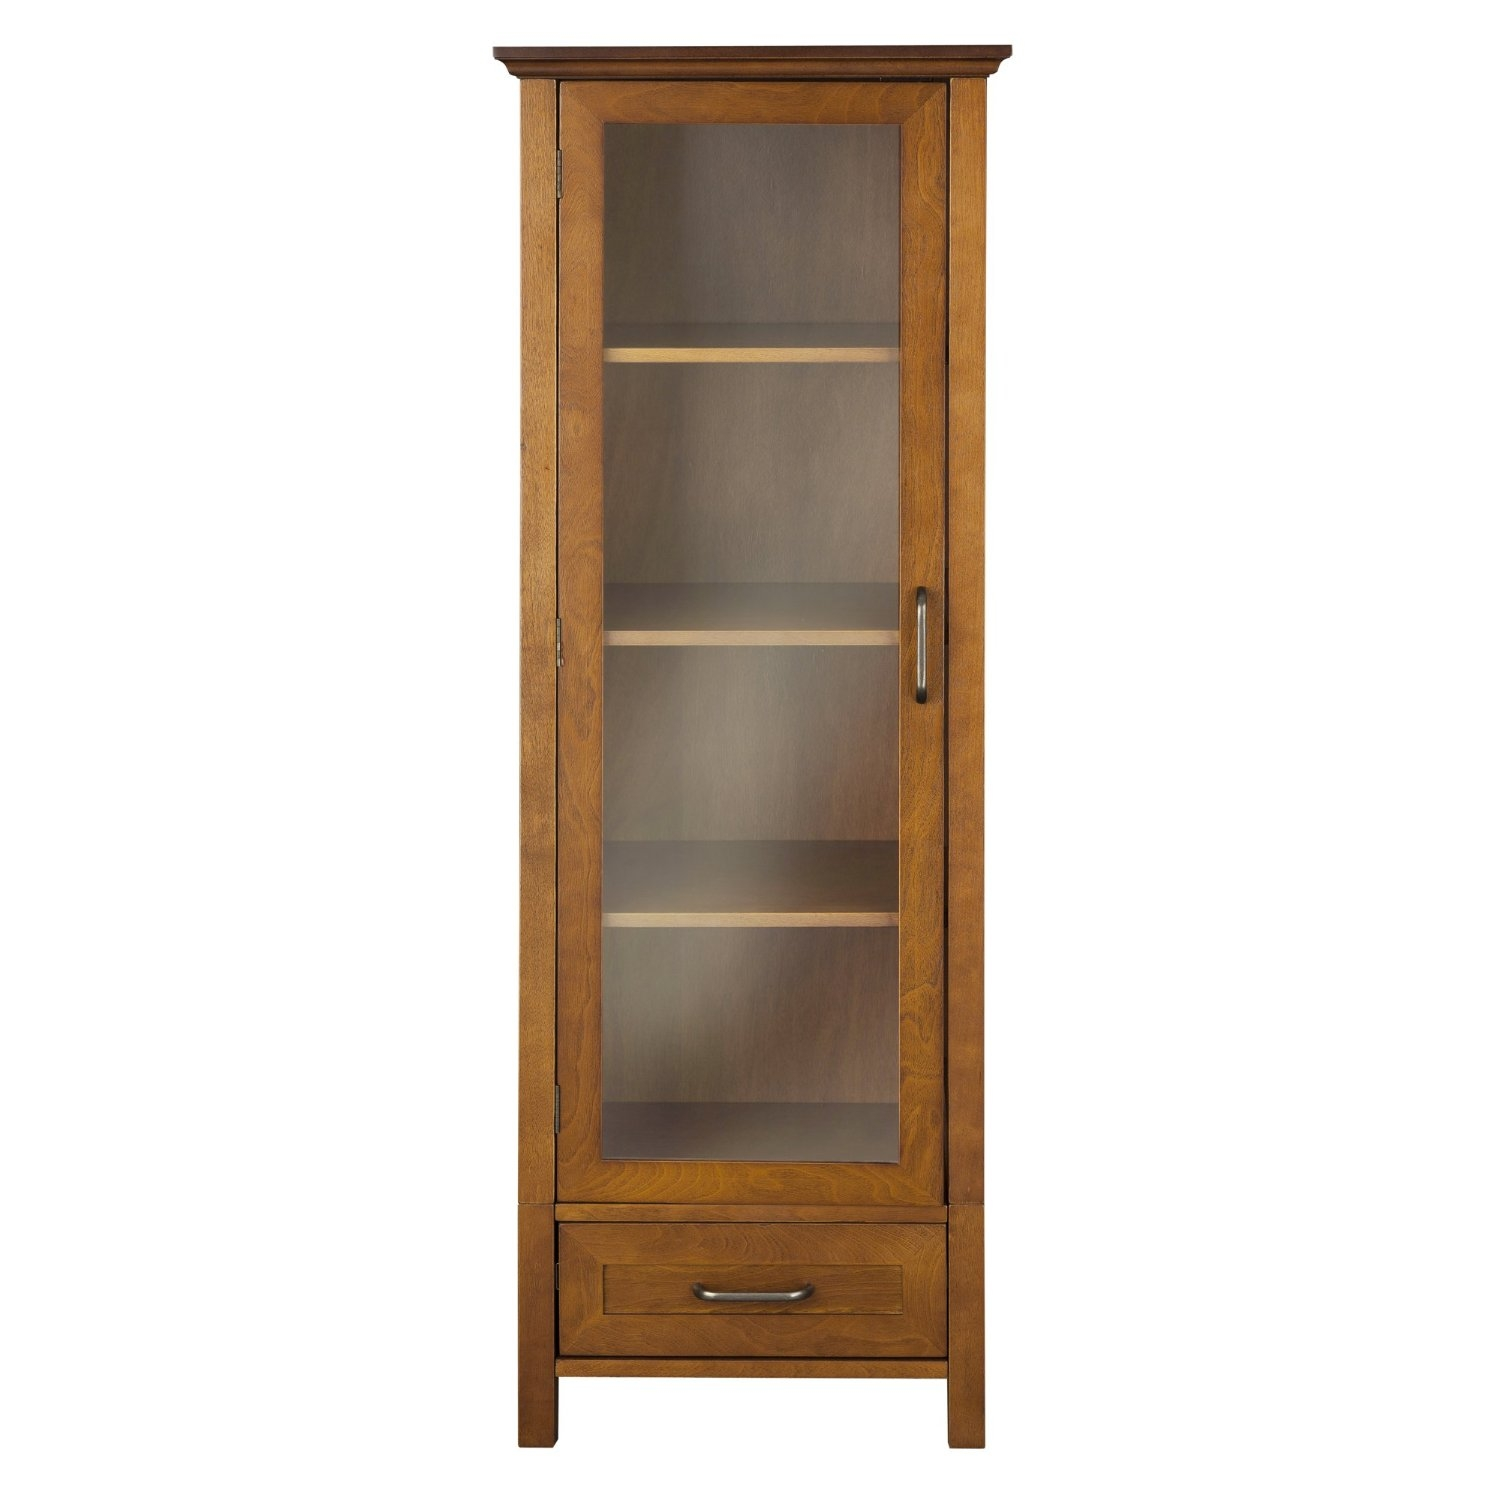 oak finish linen tower glass door bathroom storage cabinet w drawer